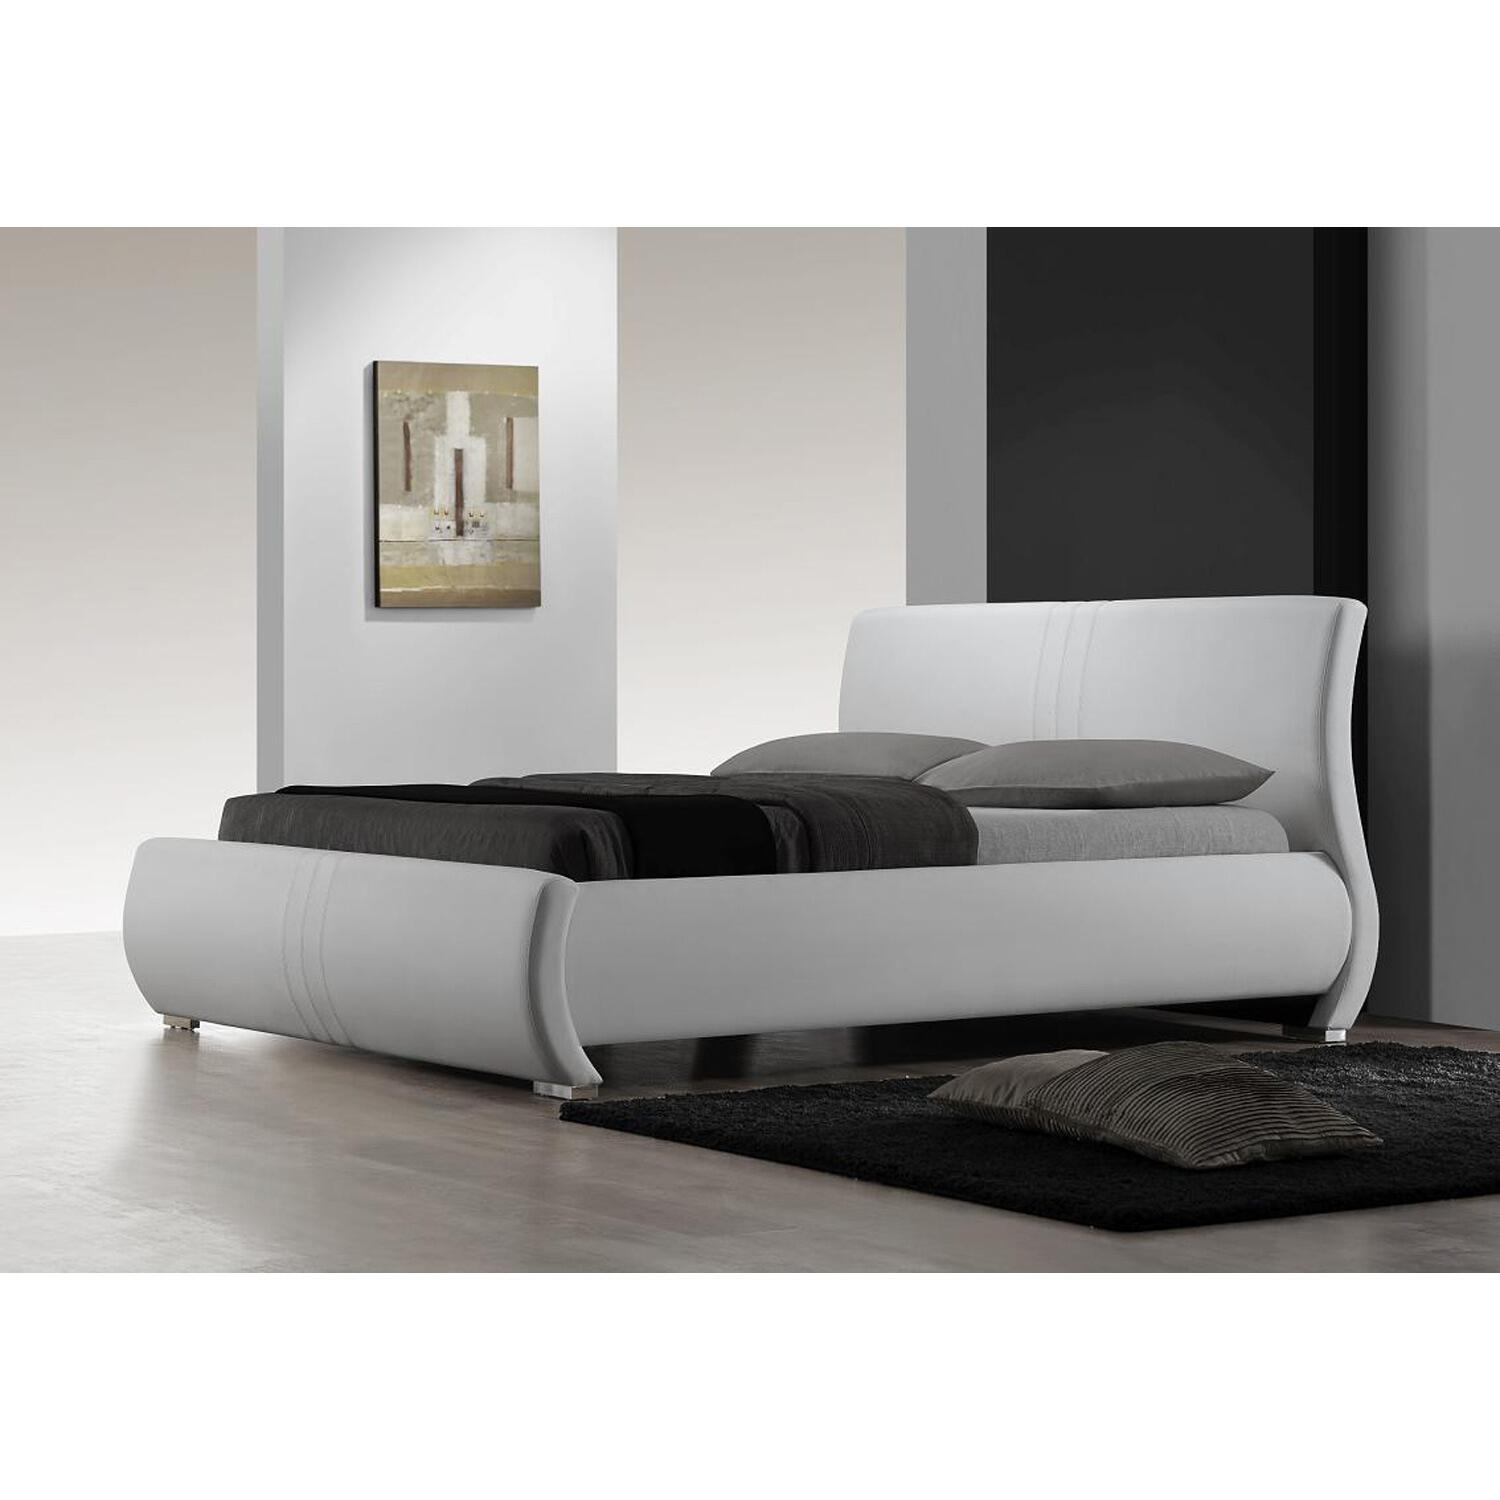 Ikea king platform bed homesfeed for Pedestal bed